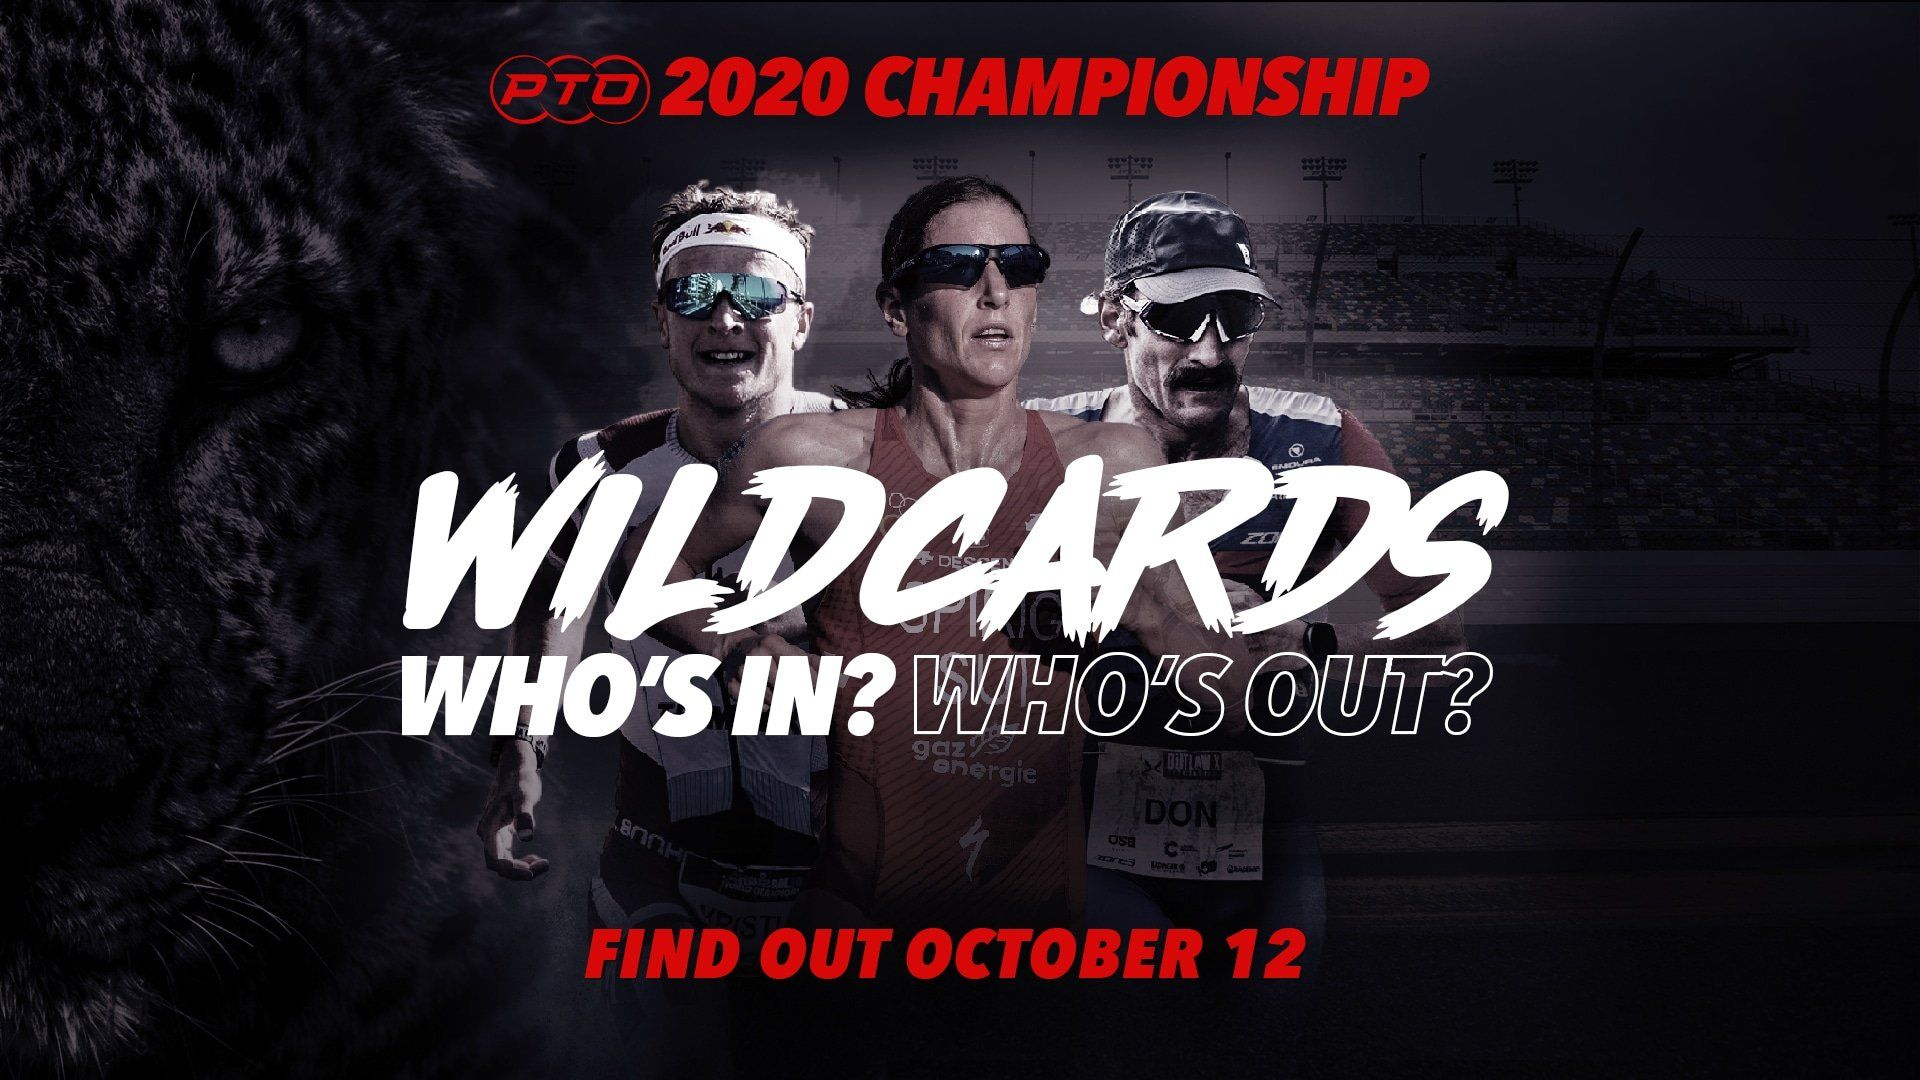 PROFESSIONAL TRIATHLETES ORGANISATION ANNOUNCES PROCESS AND CRITERIA FOR WILDCARD SLOTS FOR PTO 2020 CHAMPIONSHIP